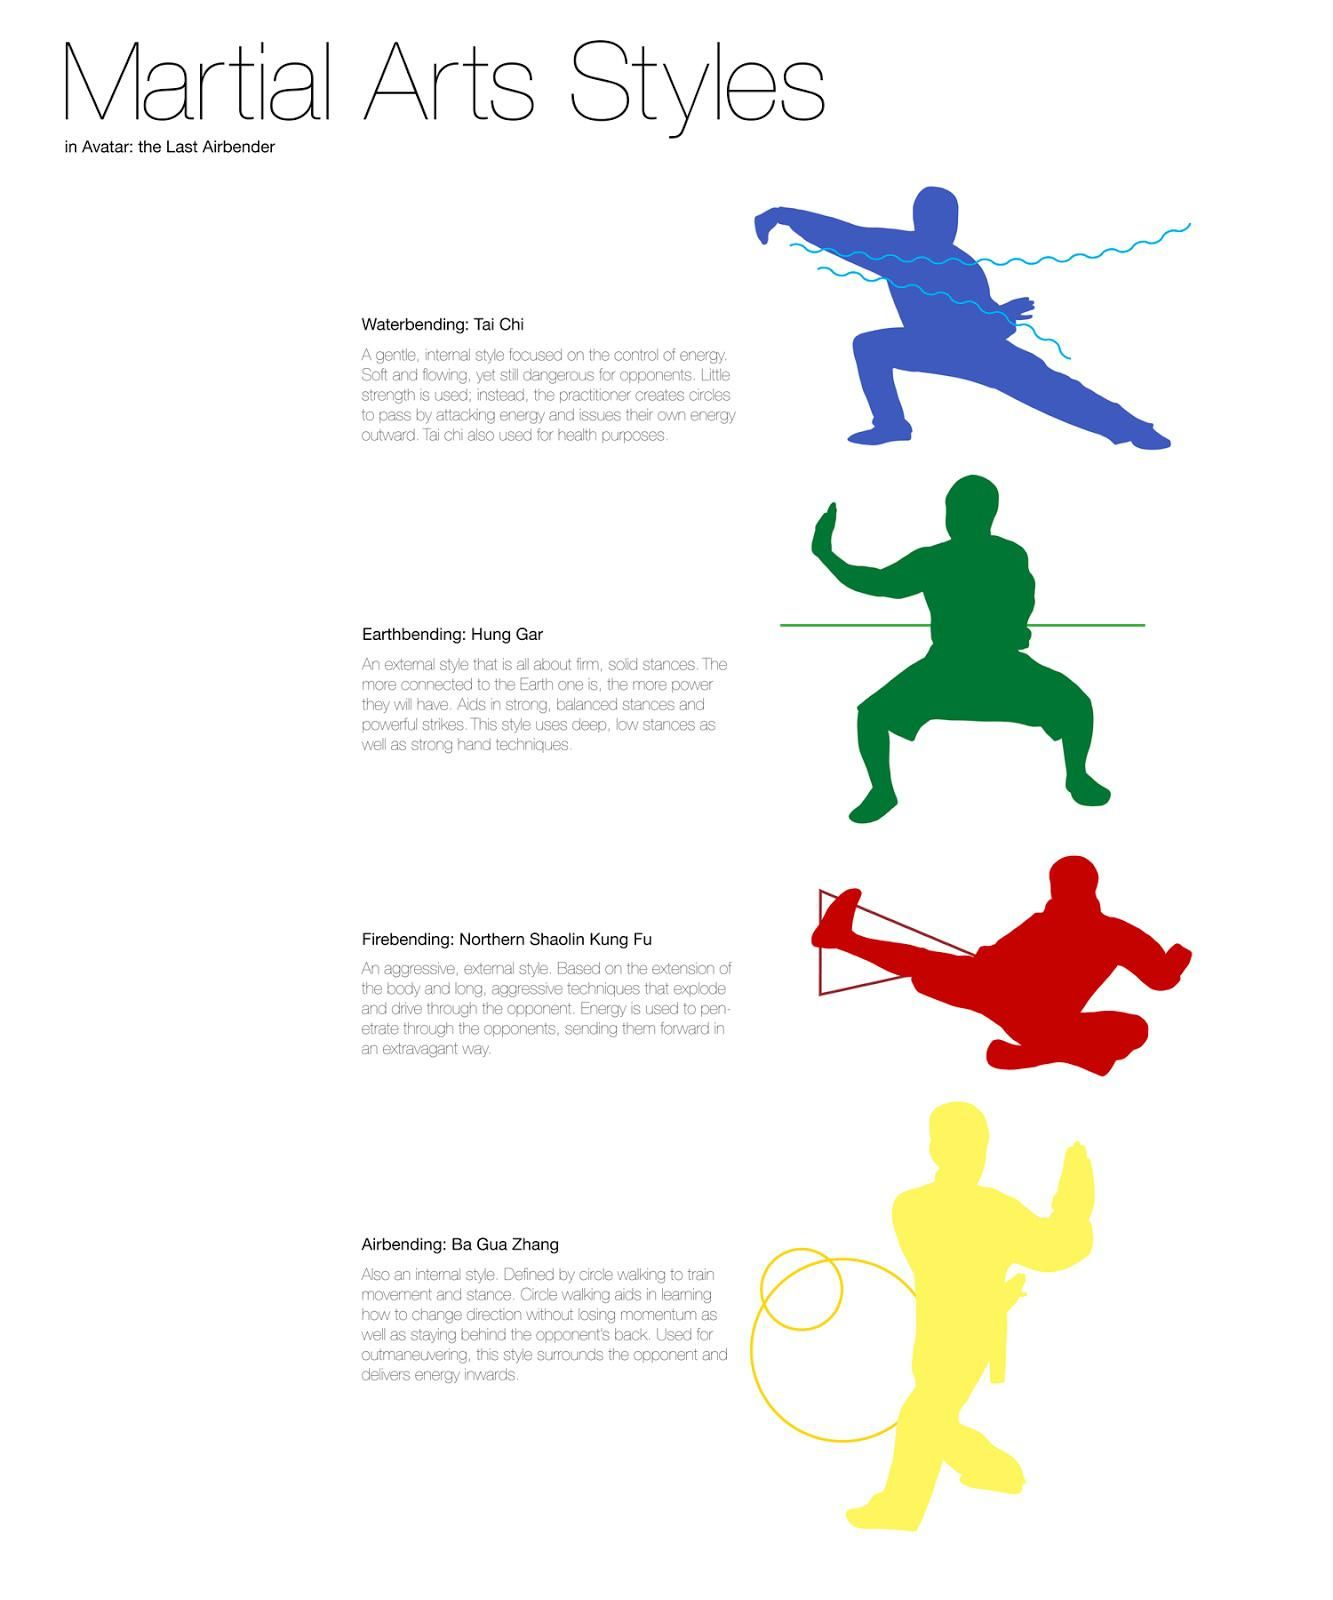 Martial Art Styles used in Avatar: The Last Air Bender